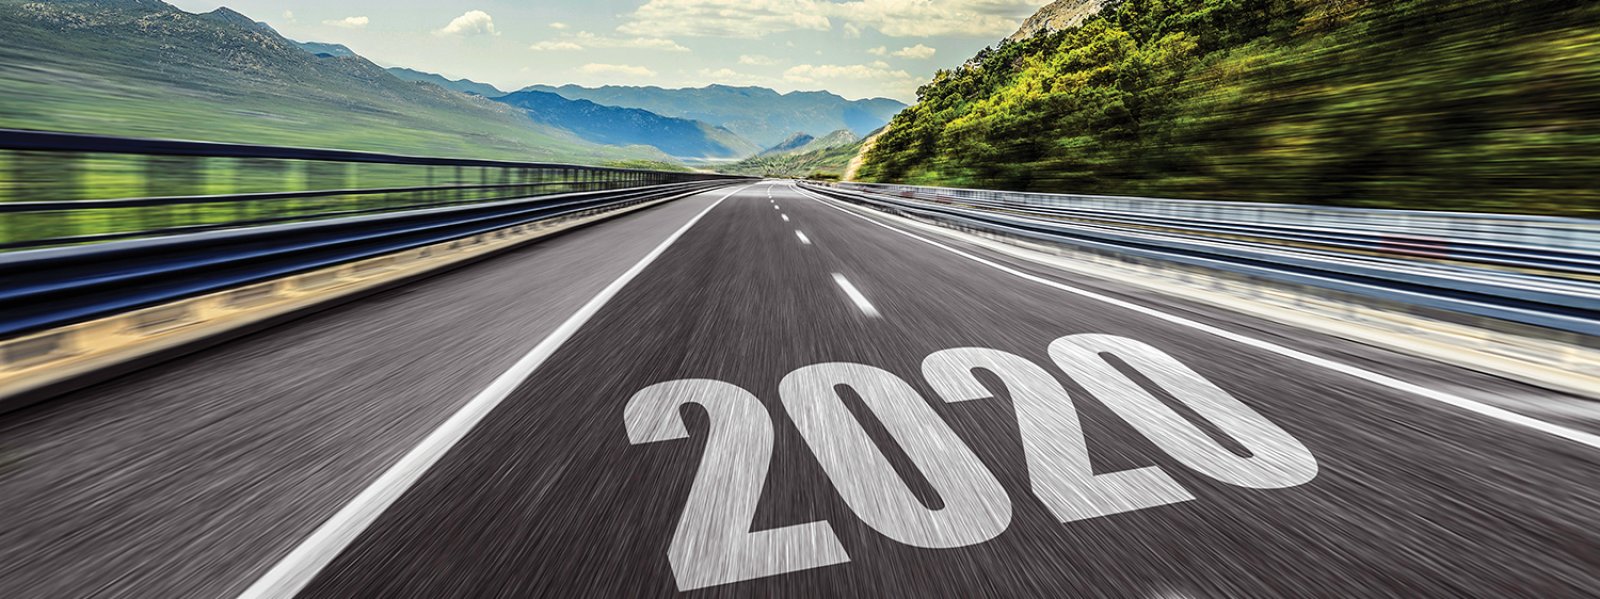 Image of road with 2020 written on it